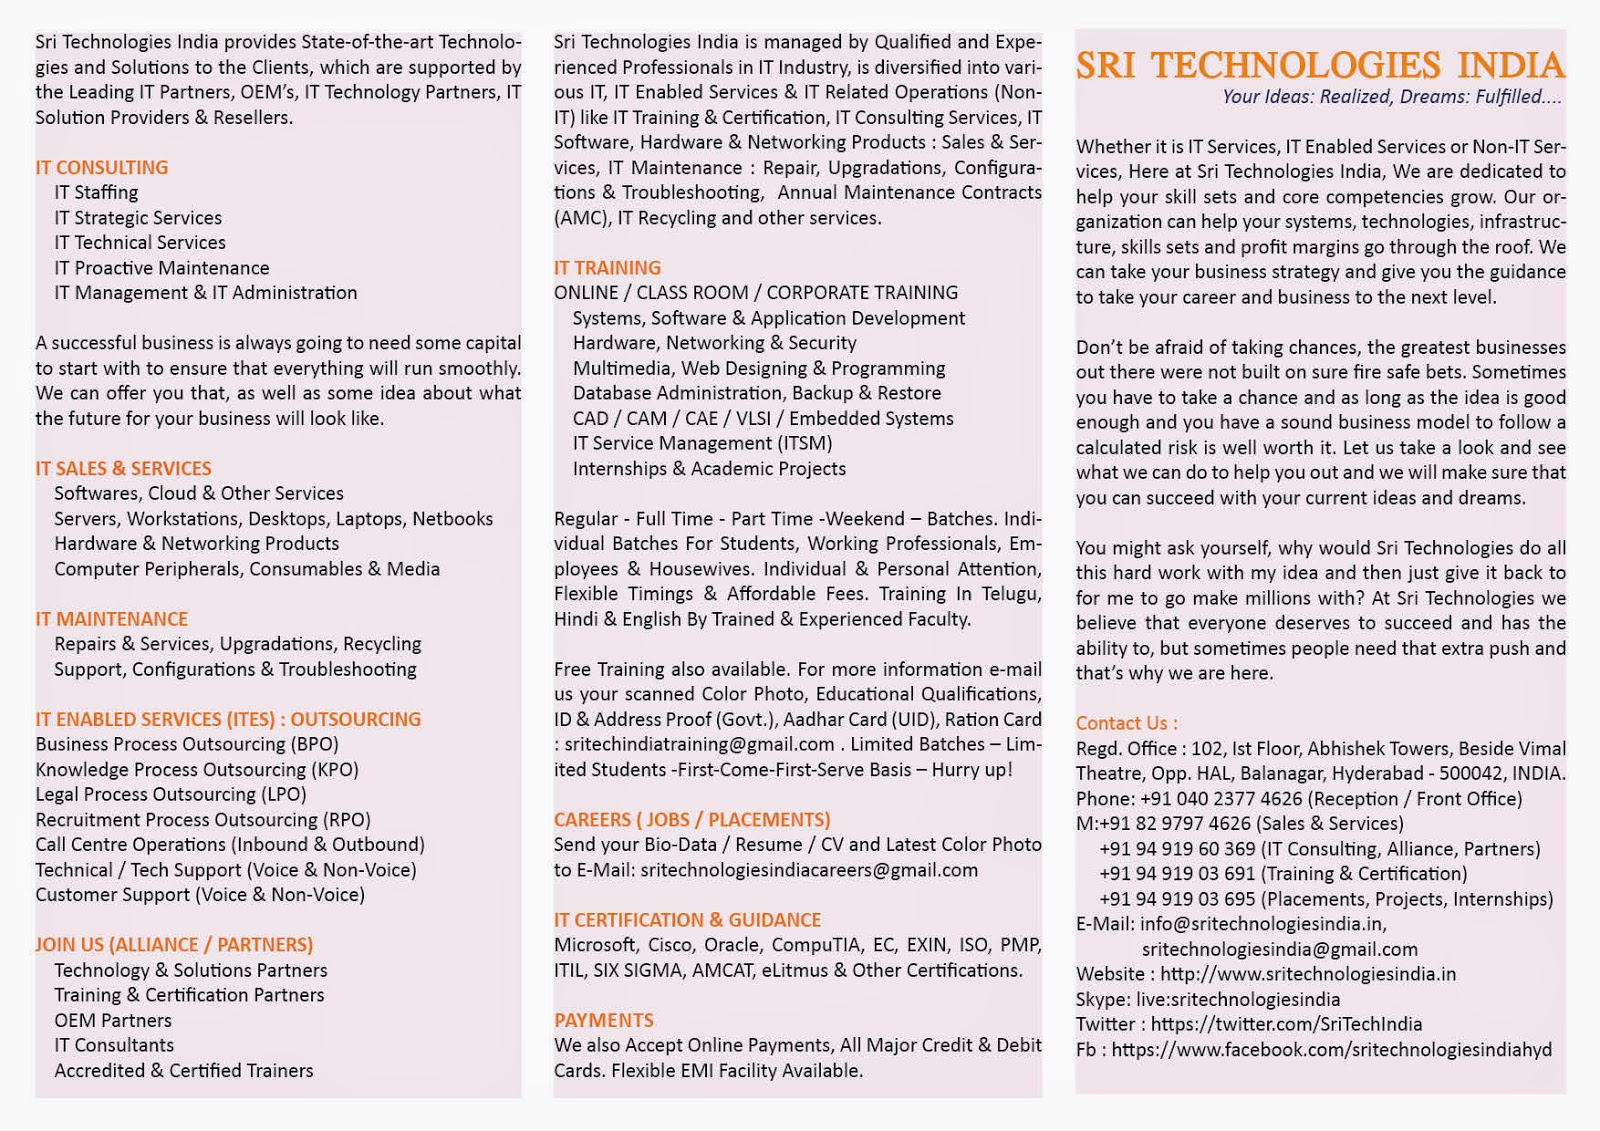 Welcome to Sri Technologies India - Free Training - Computer